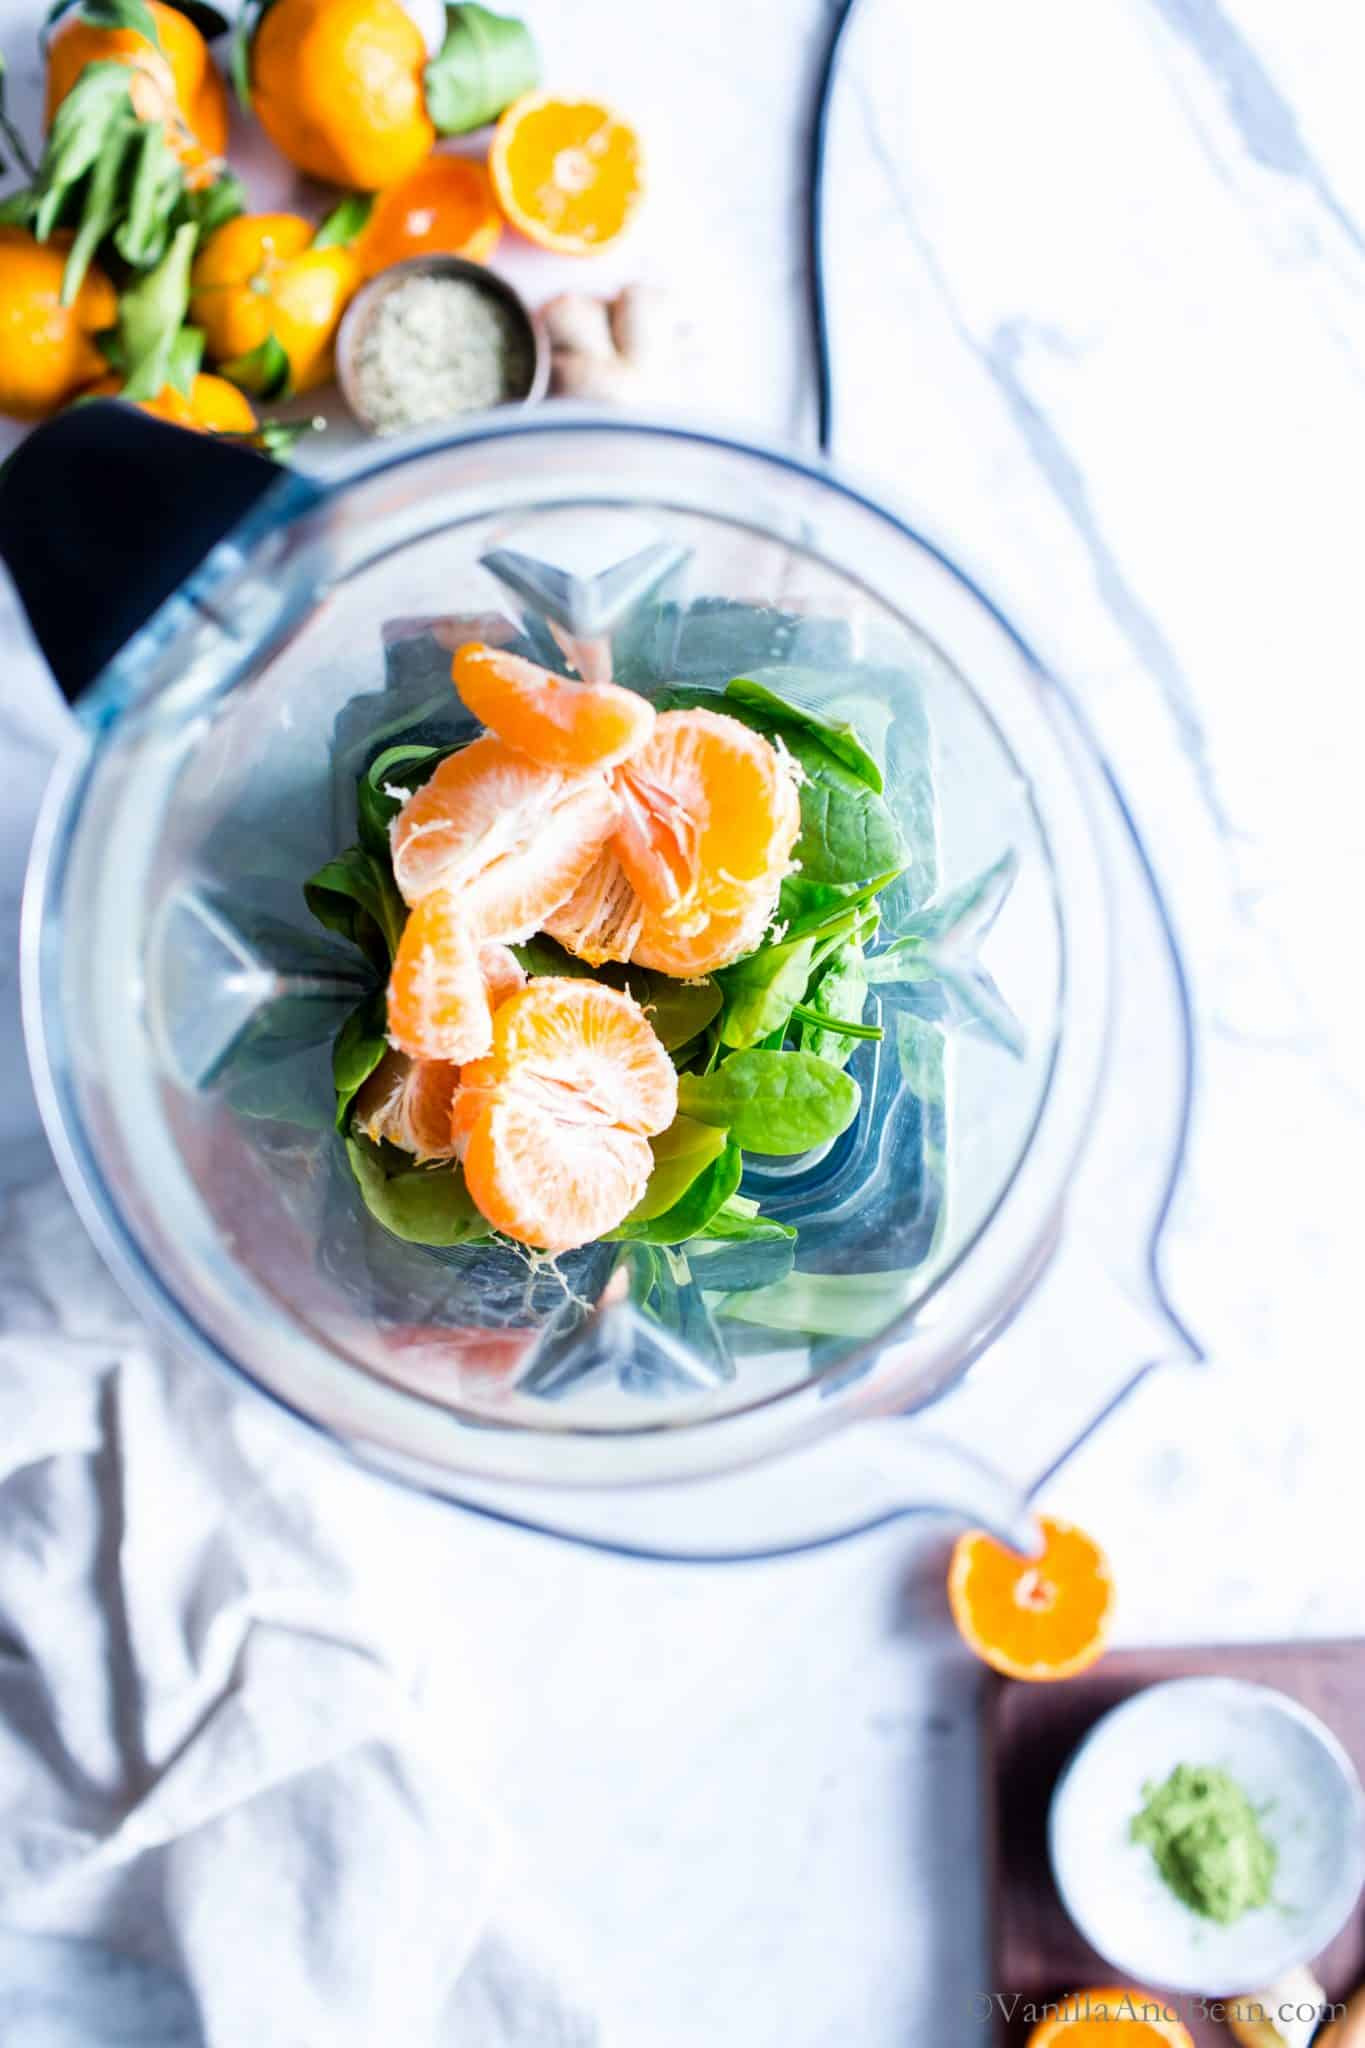 Spinach and oranges in a high speed blender container